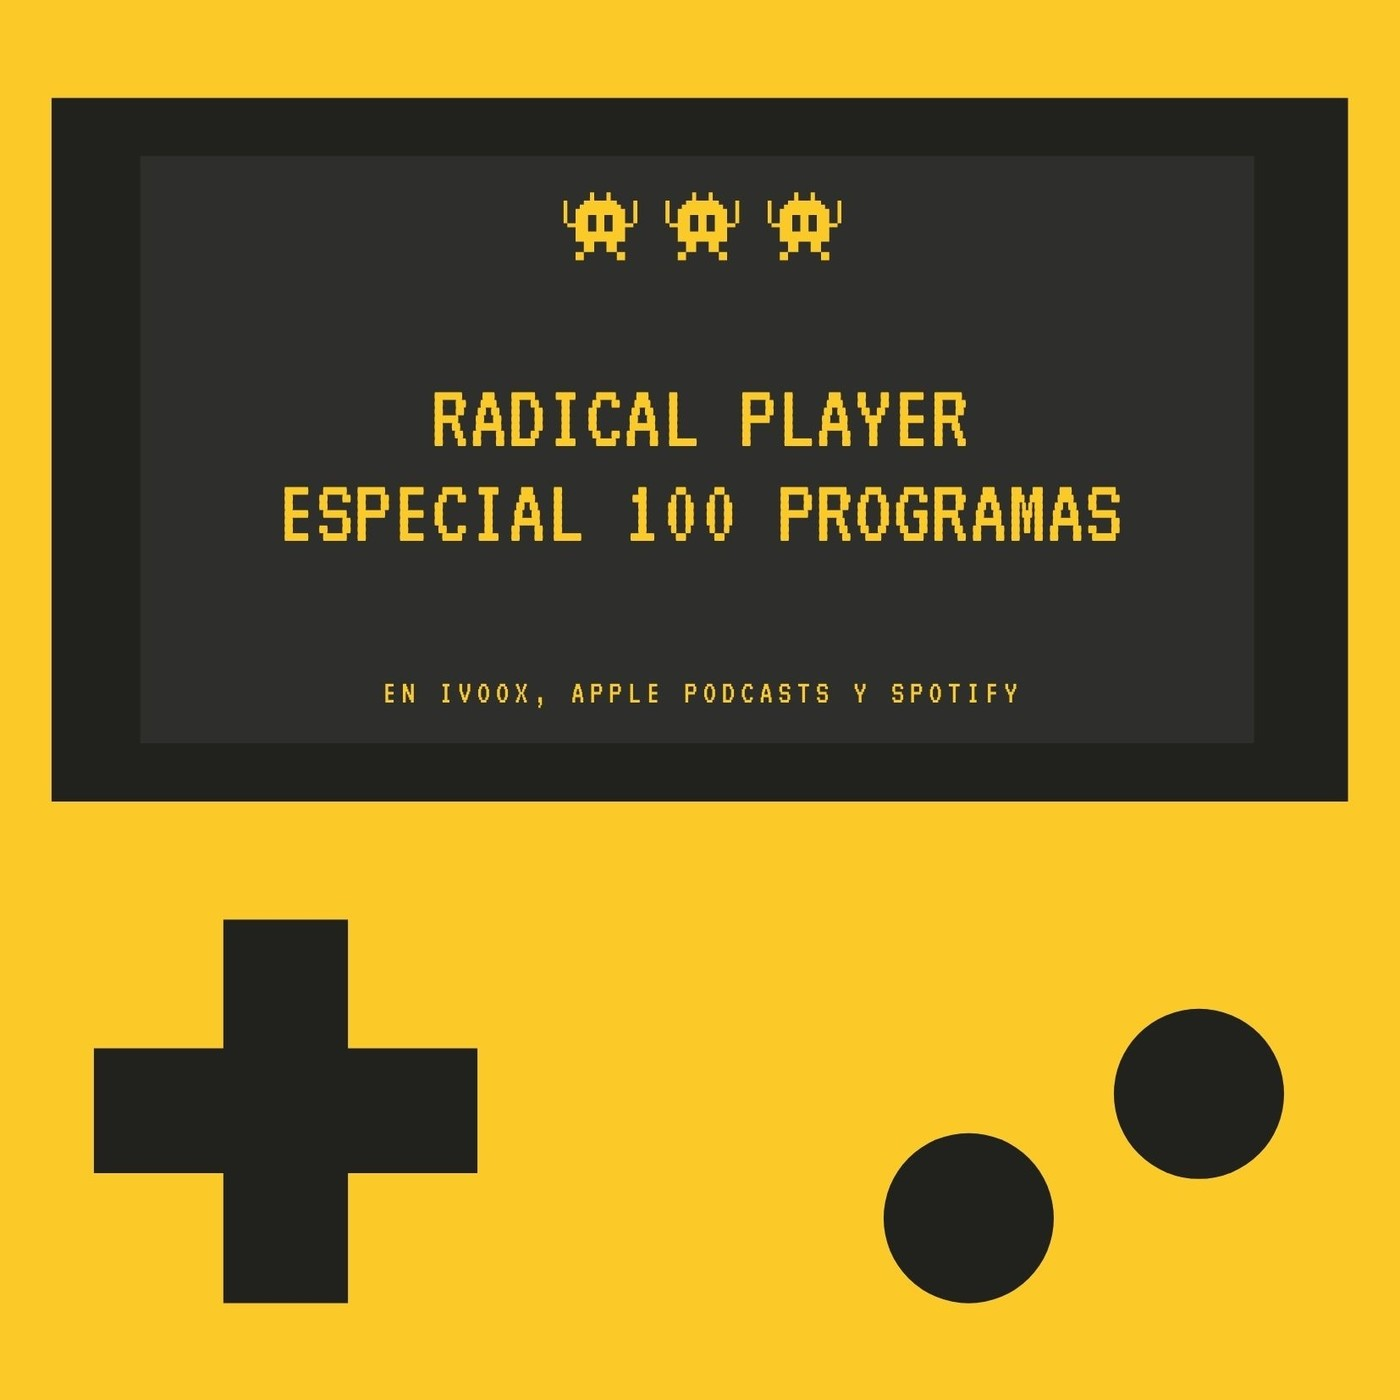 Radical Player especial 100 programas